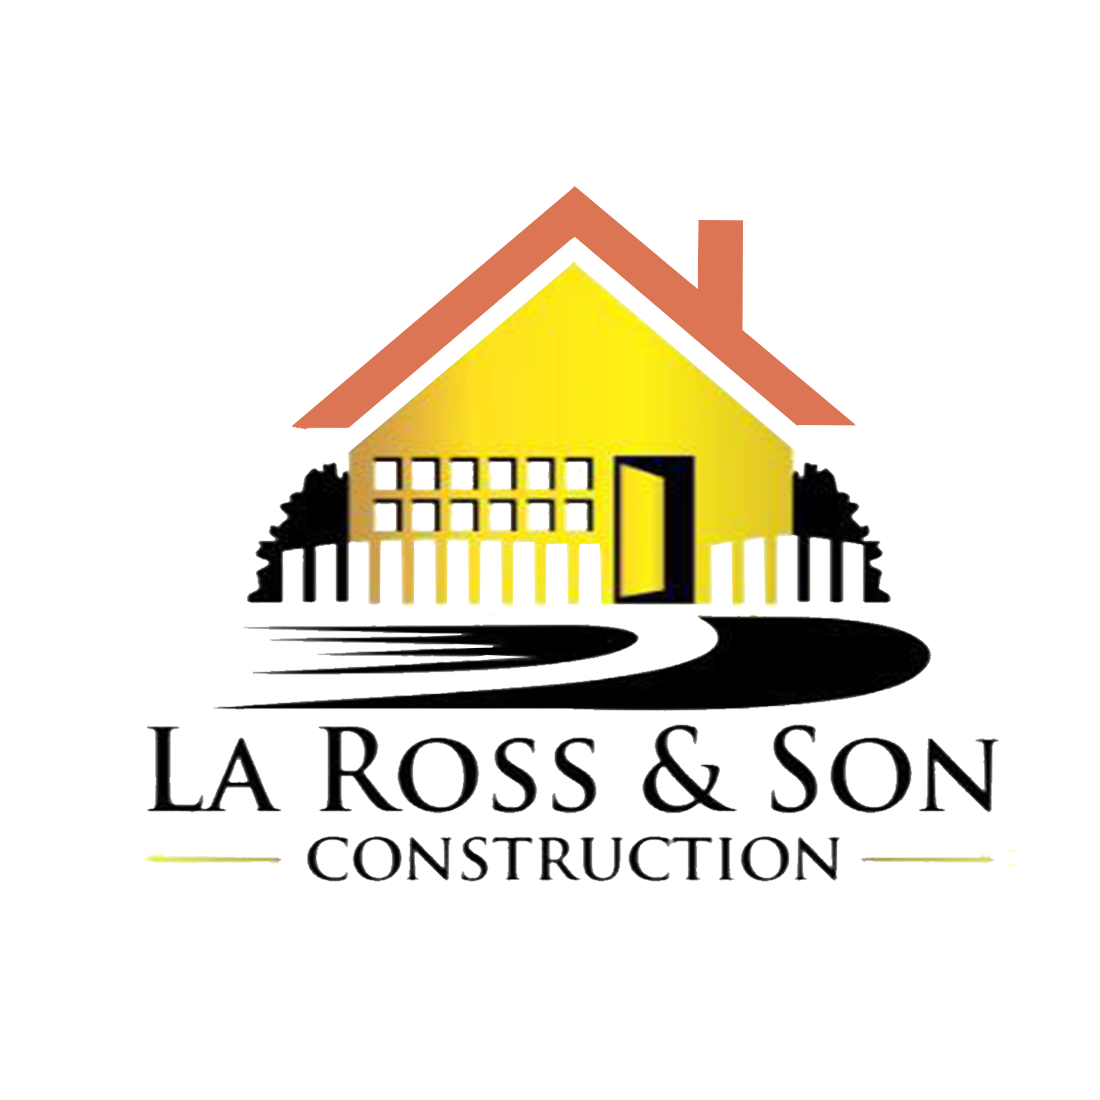 La Ross and Son